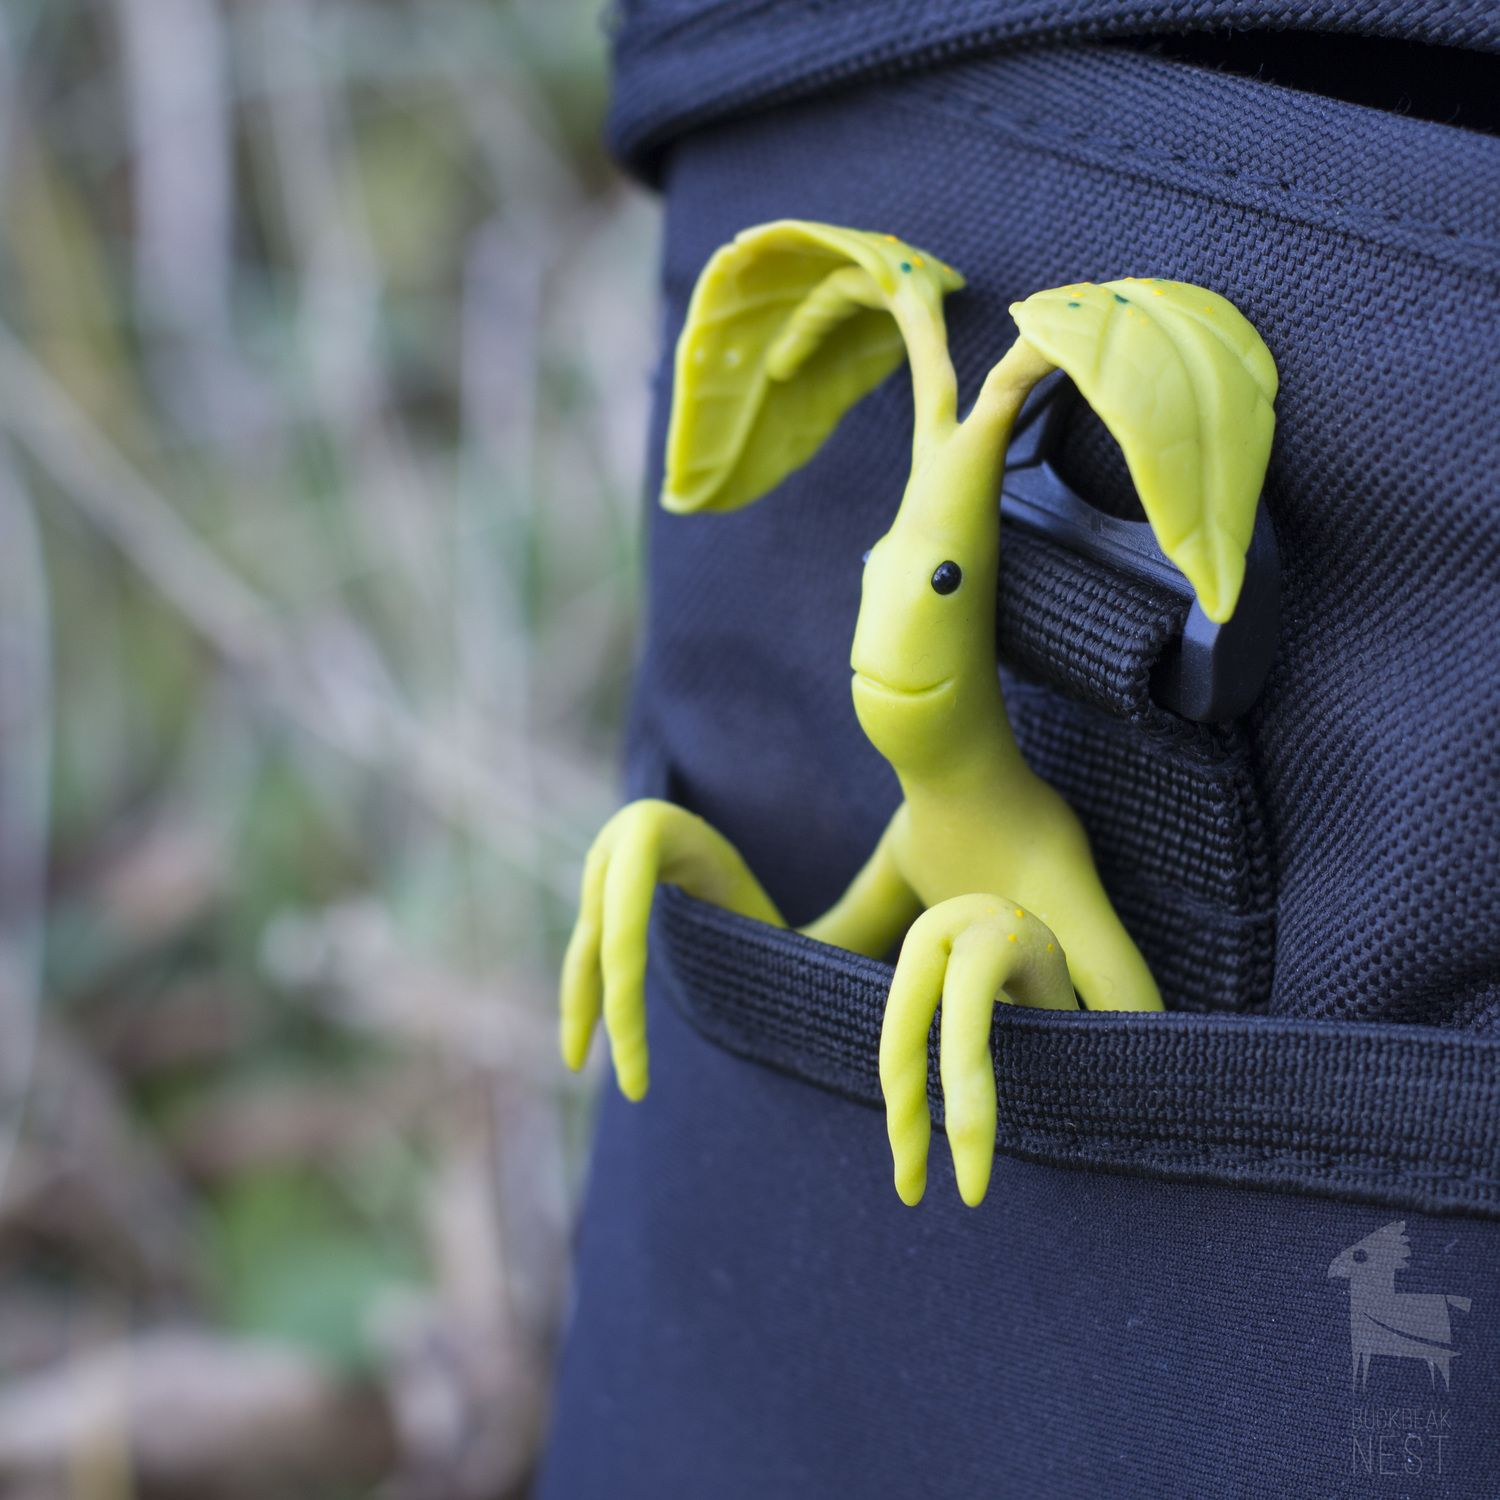 Pickett The Bowtruckle The Fantastic Beast What Is A Bowtruckle Fantastic Beast Movie Bowt Pickett Fantastic Beasts Fantastic Beasts Diy Harry Potter Crafts Although ordinarily peaceful, a bowtruckle will attack a human if provoked (which includes perceived assaults upon the bowtruckle's tree as well as the bowtruckle itself). pickett fantastic beasts